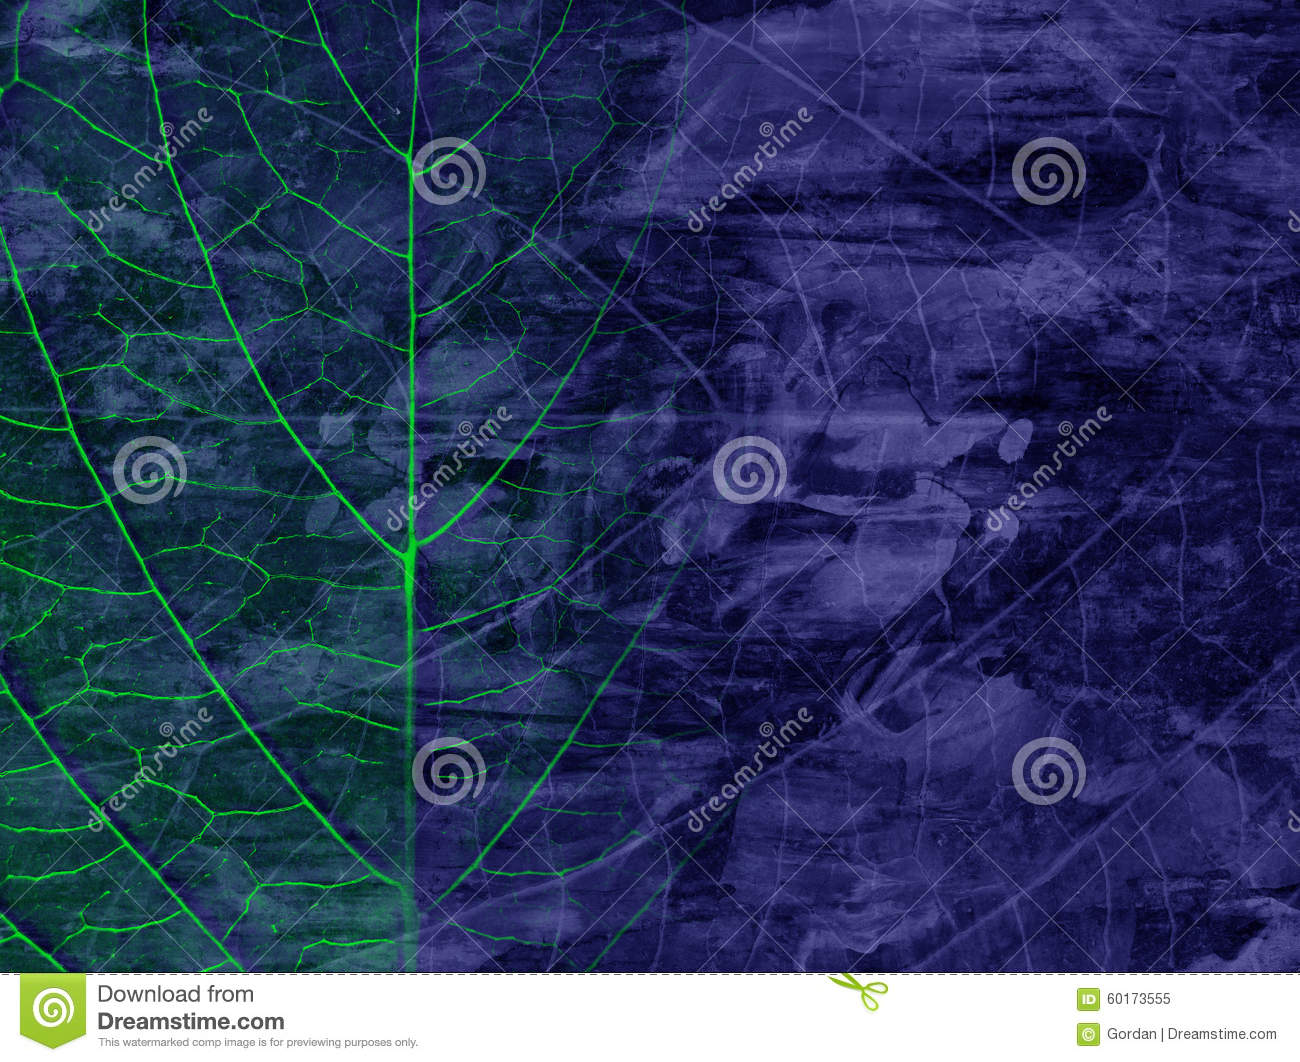 Abstract Art Mixed Media Grunge Stock Photo: Crackled Cartoons, Illustrations & Vector Stock Images